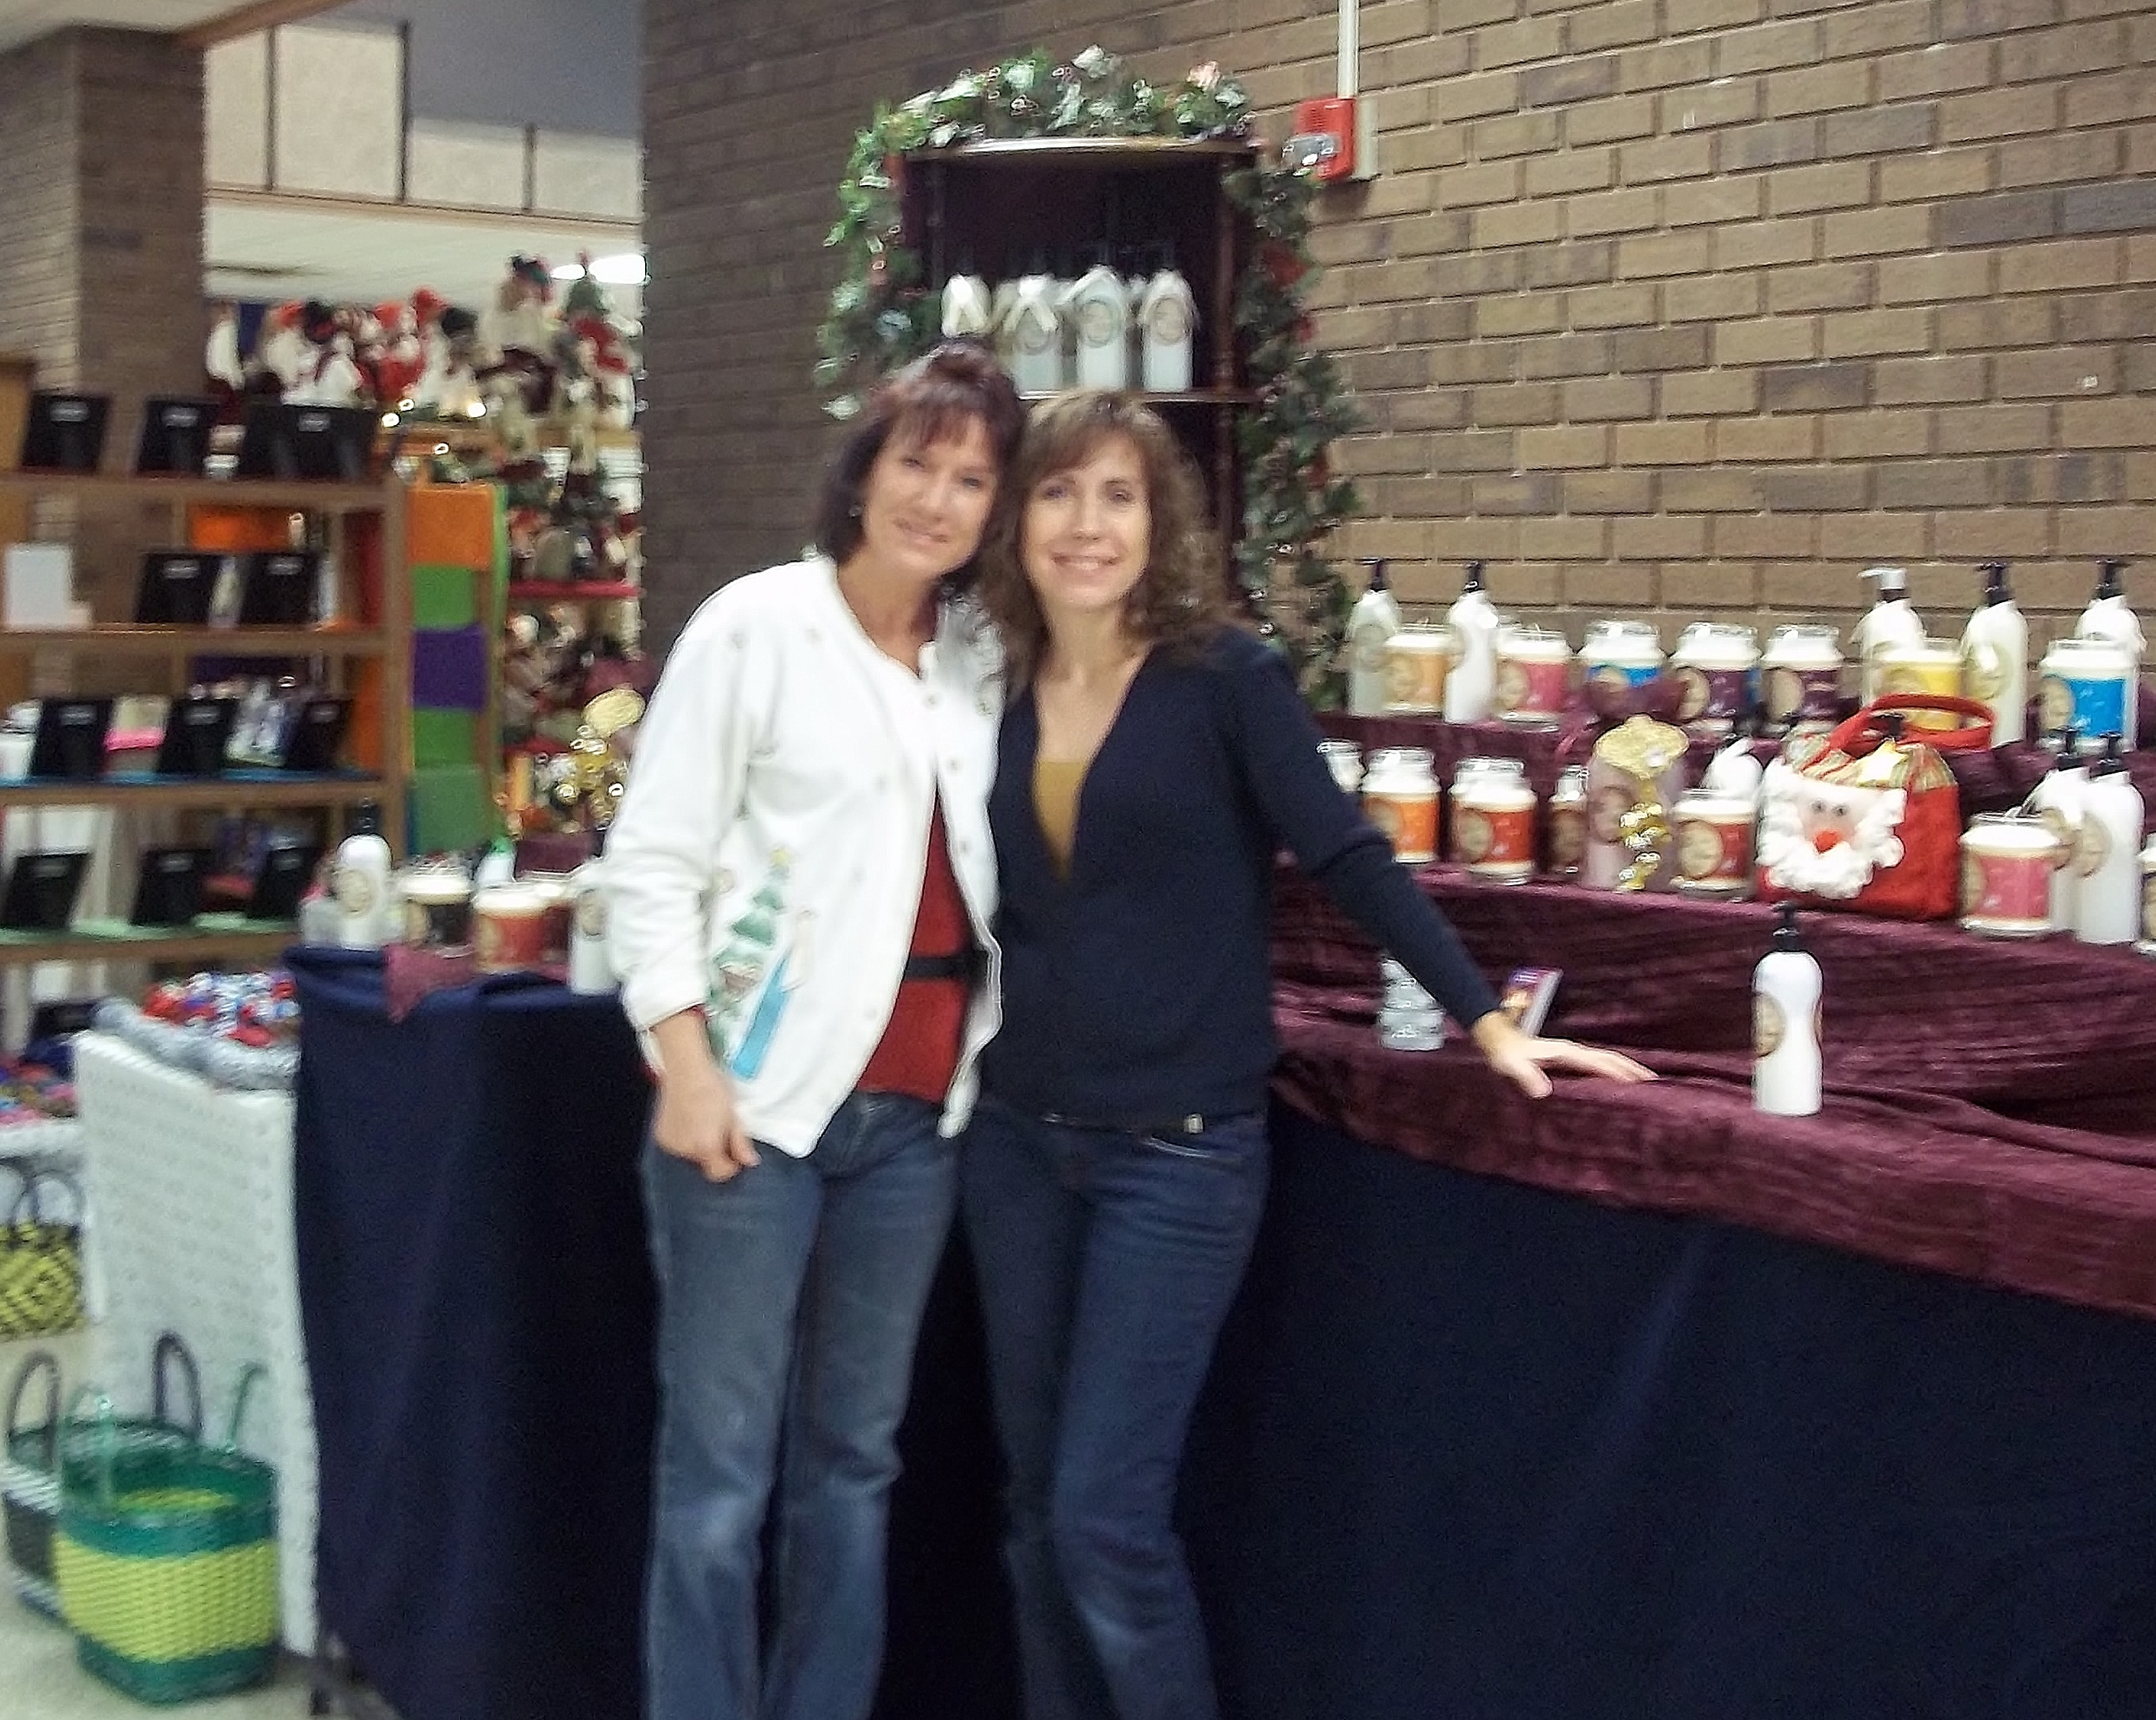 Lisa and Brenda with soy christian candles